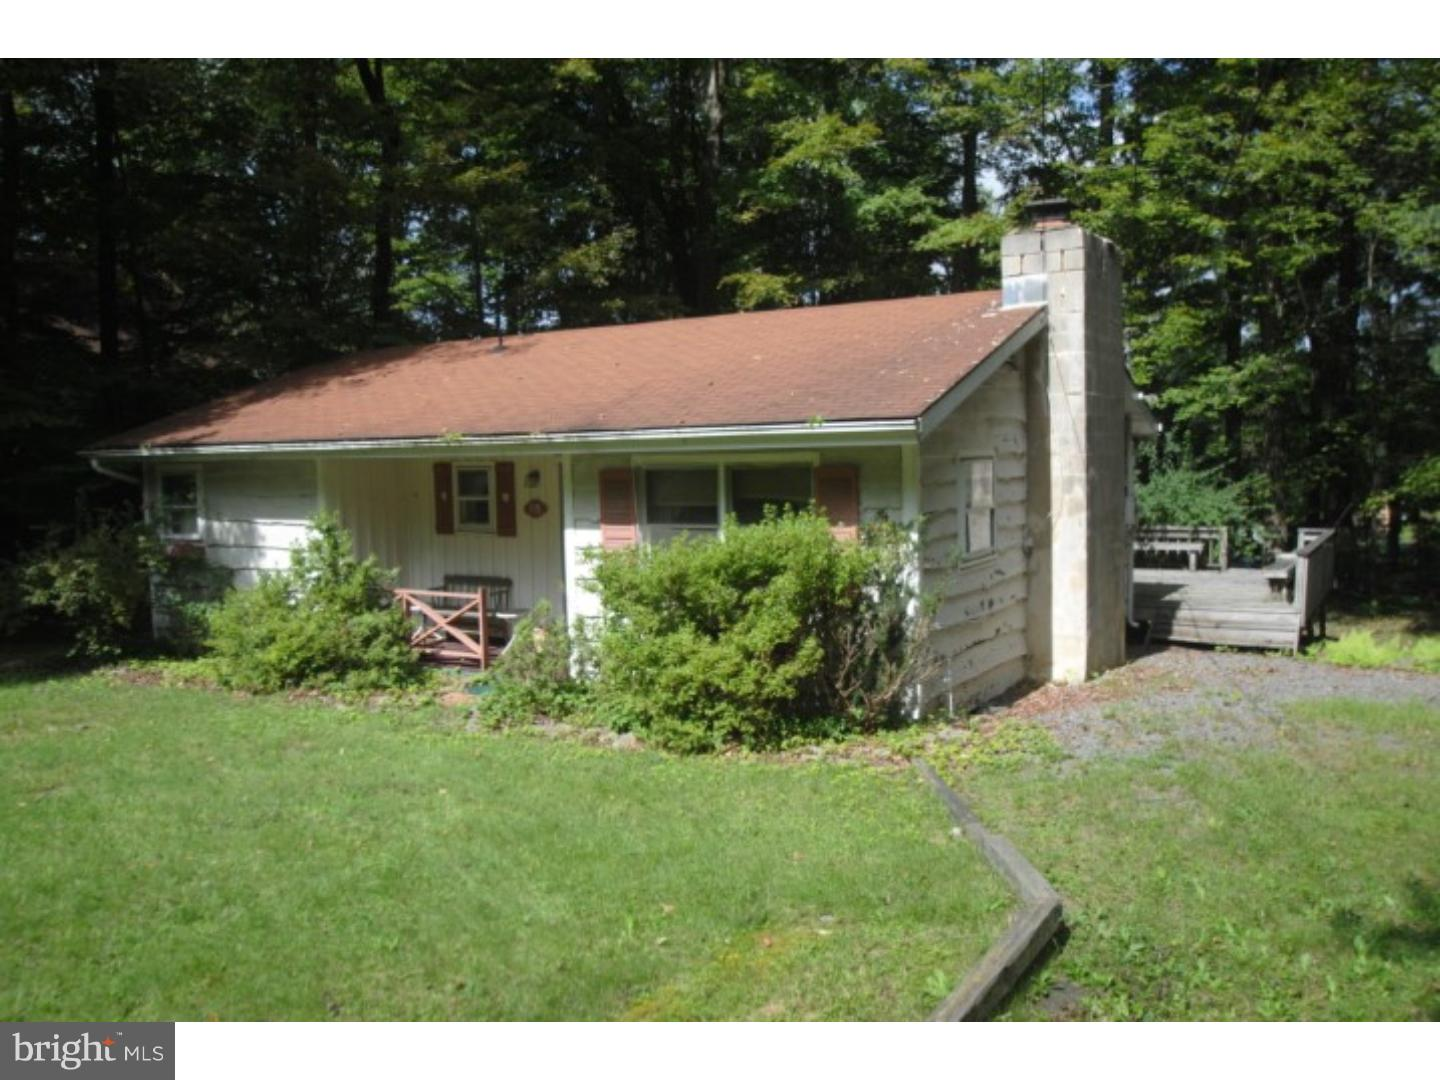 115 MOHICAN TRAIL, POCONO LAKE, PA 18347